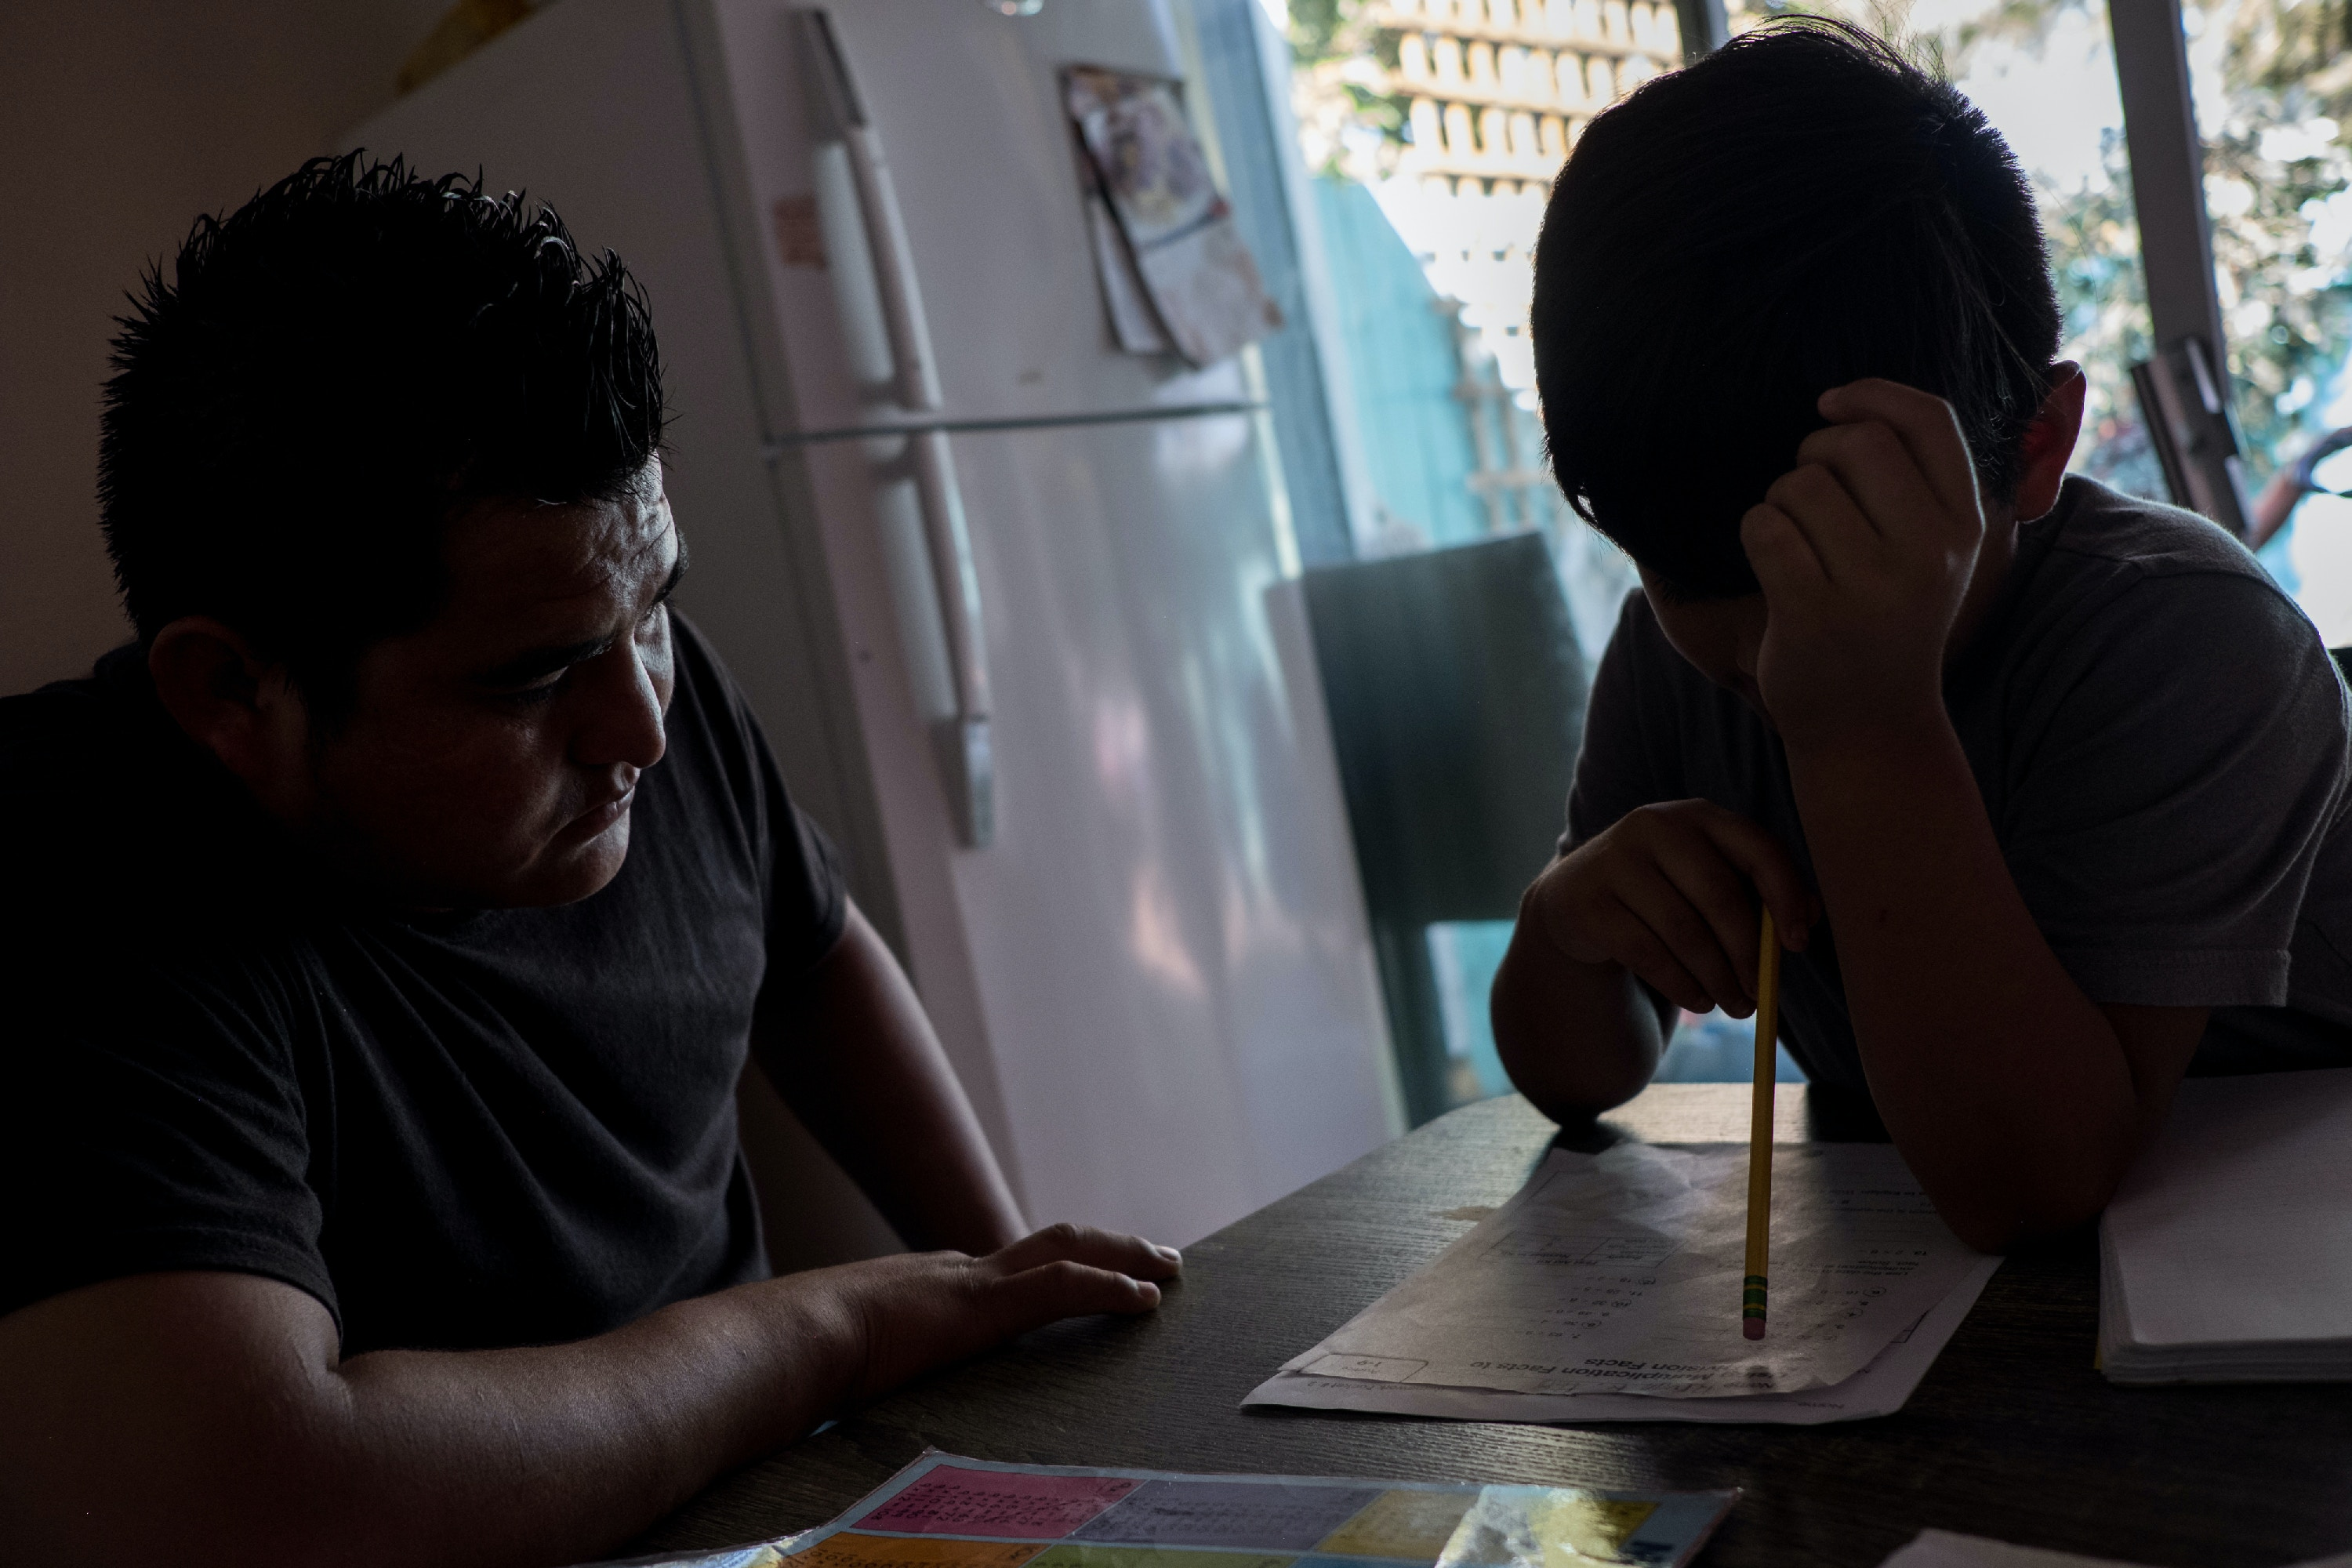 Carlos Rueda Cruz, 28, left, helps his son Brian Josue, 9, with his homework at their home in Sacramento, Calif., Monday, Sept. 10, 2018. (Joel Angel Juárez for The Intercept)